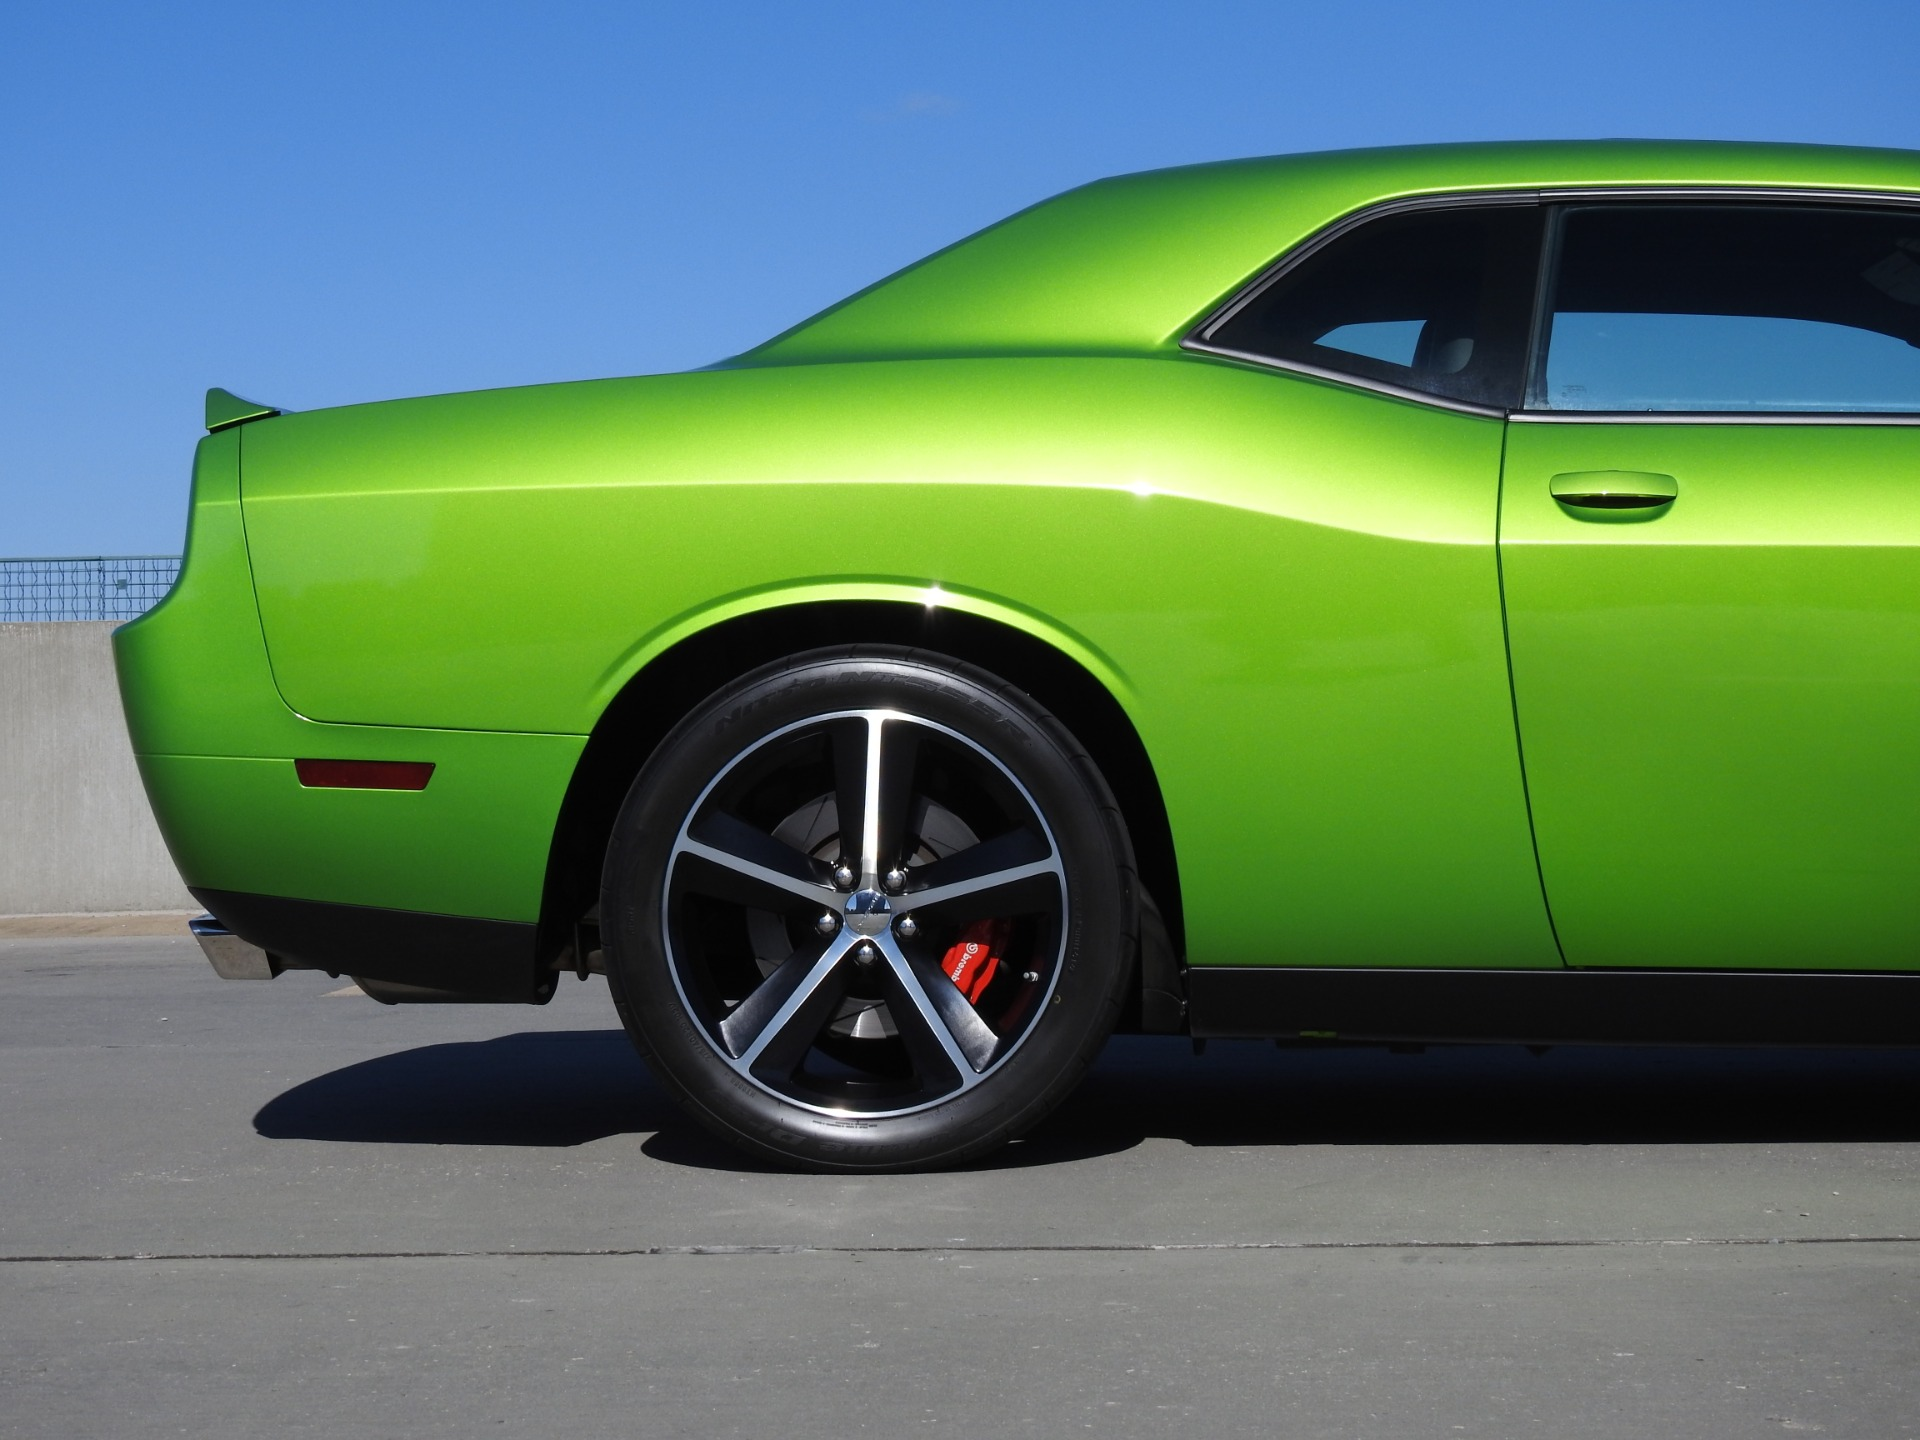 Used-2011-Dodge-Challenger-SRT8-****-BLOWN-HEMI-410-producing-800-HP-****-for-sale-Jackson-MS